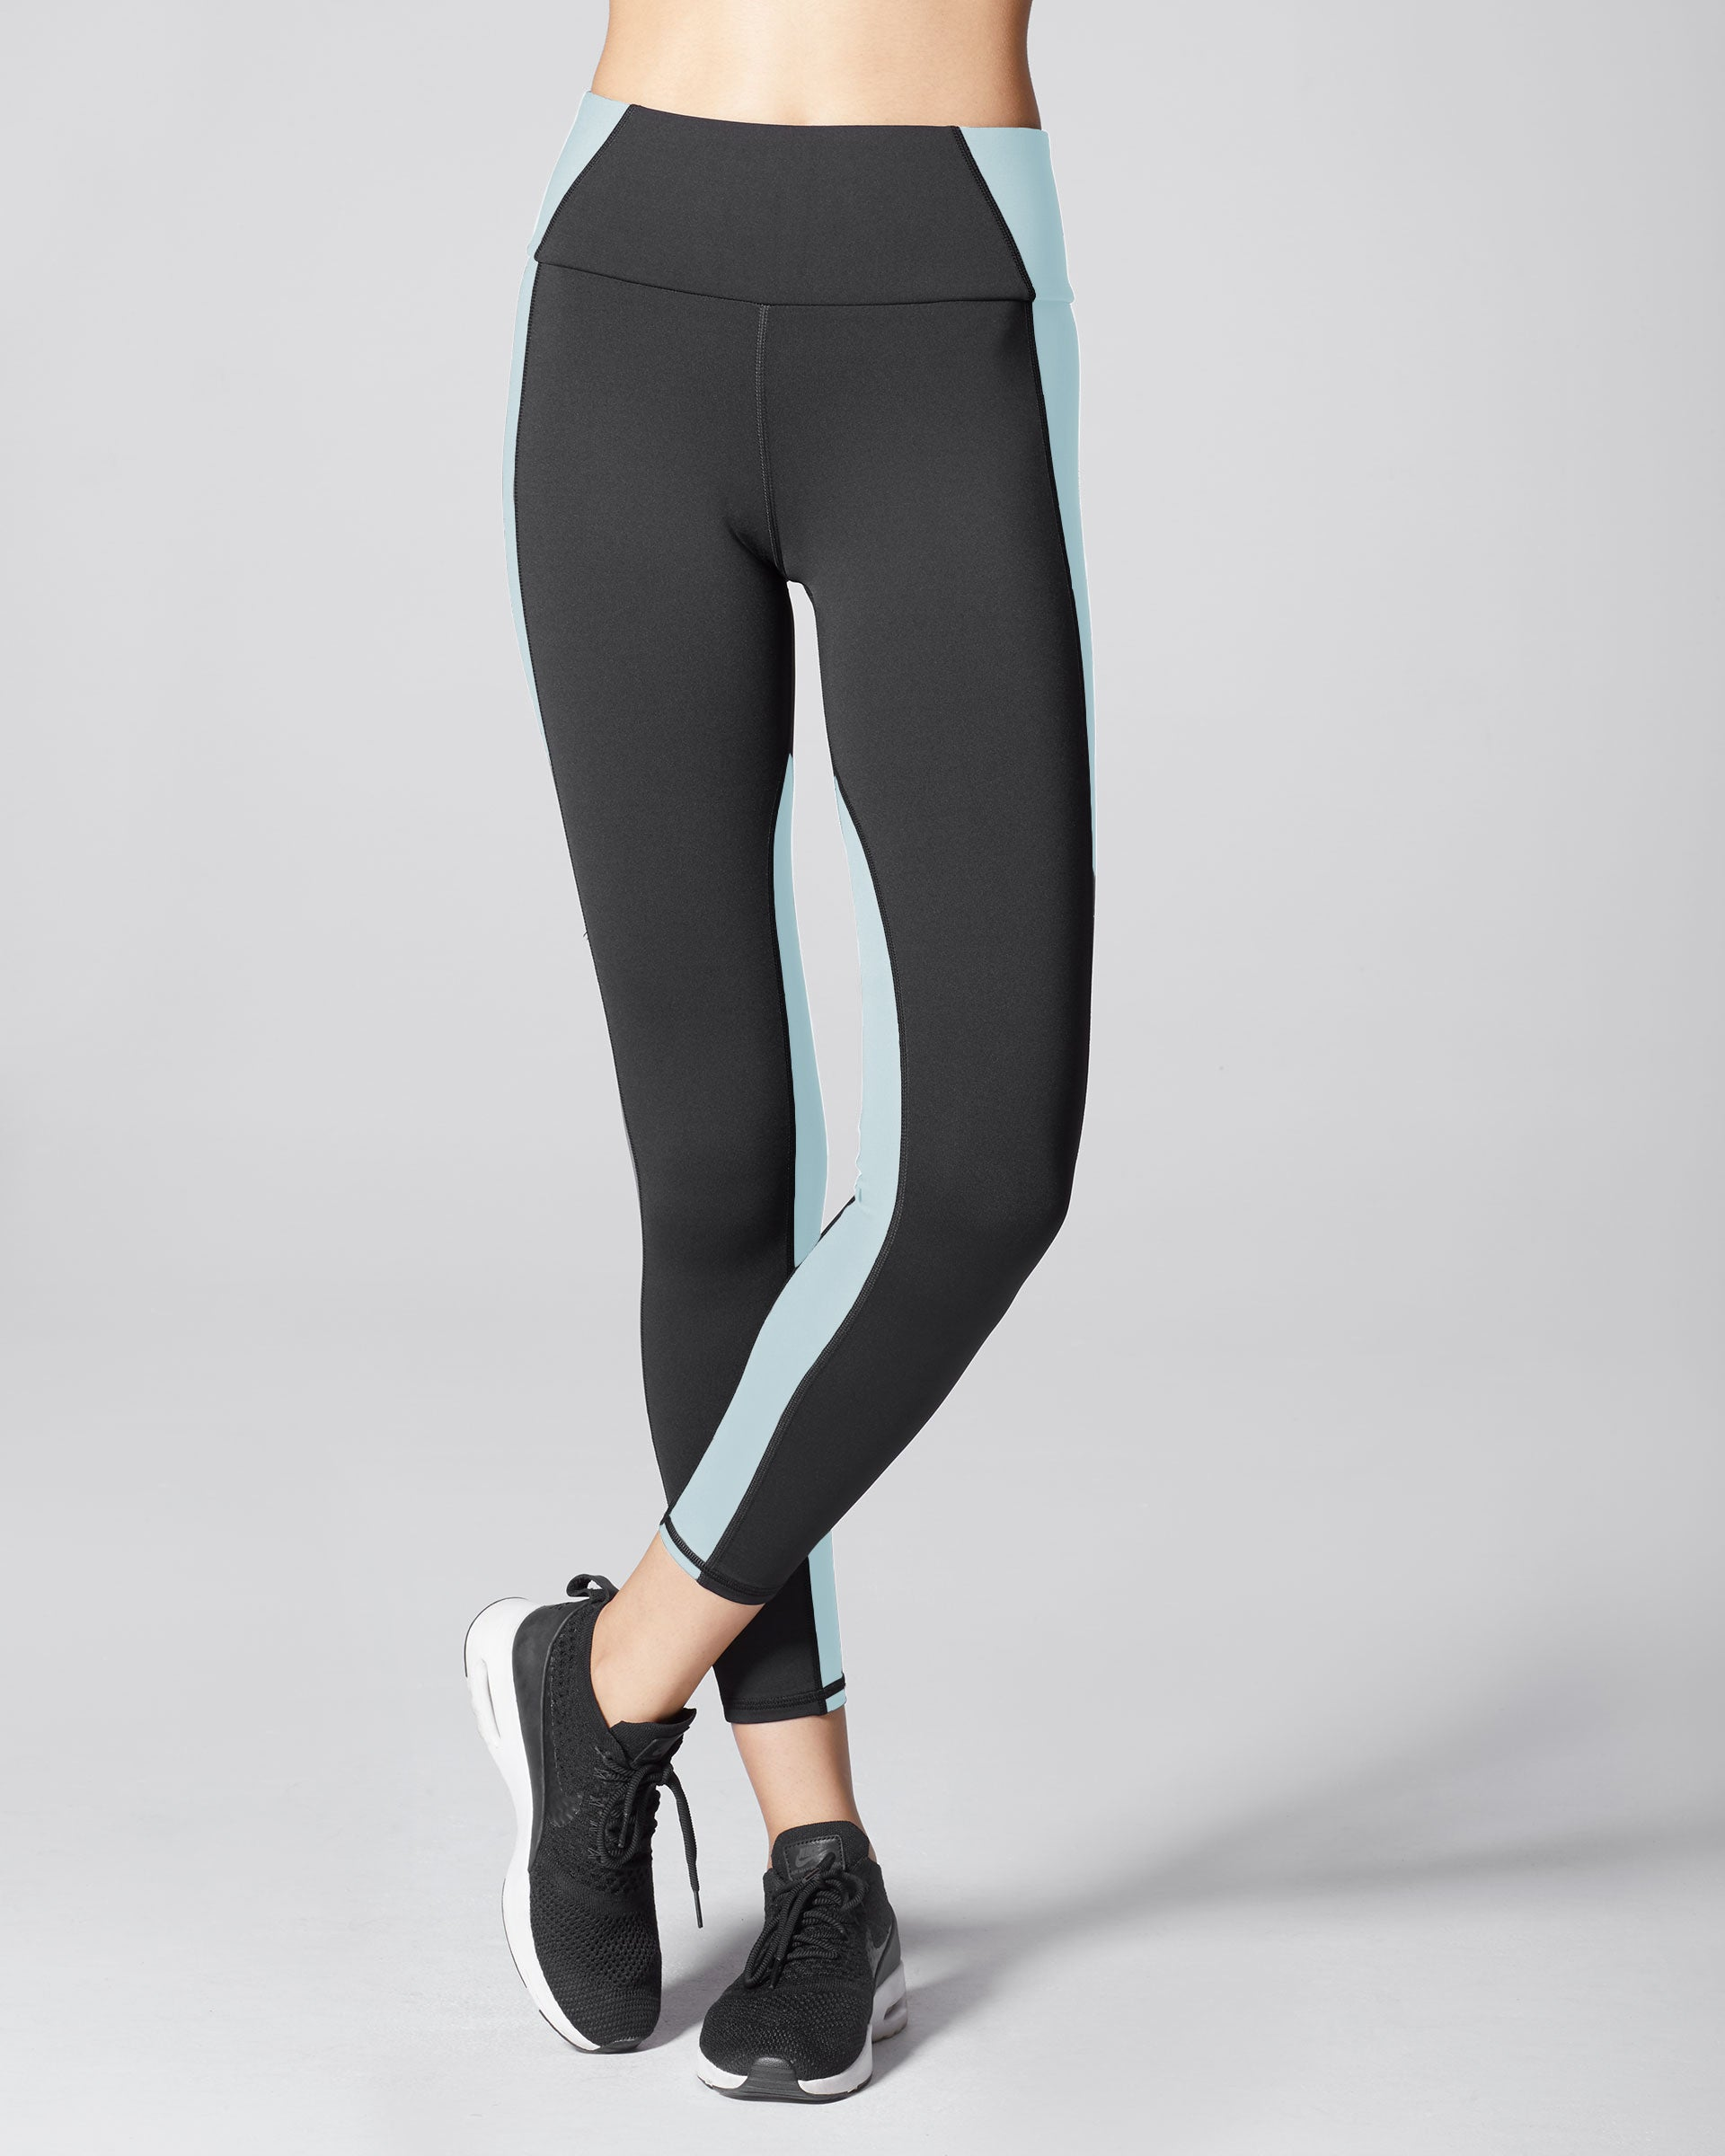 vibe-high-waisted-legging-black-sky